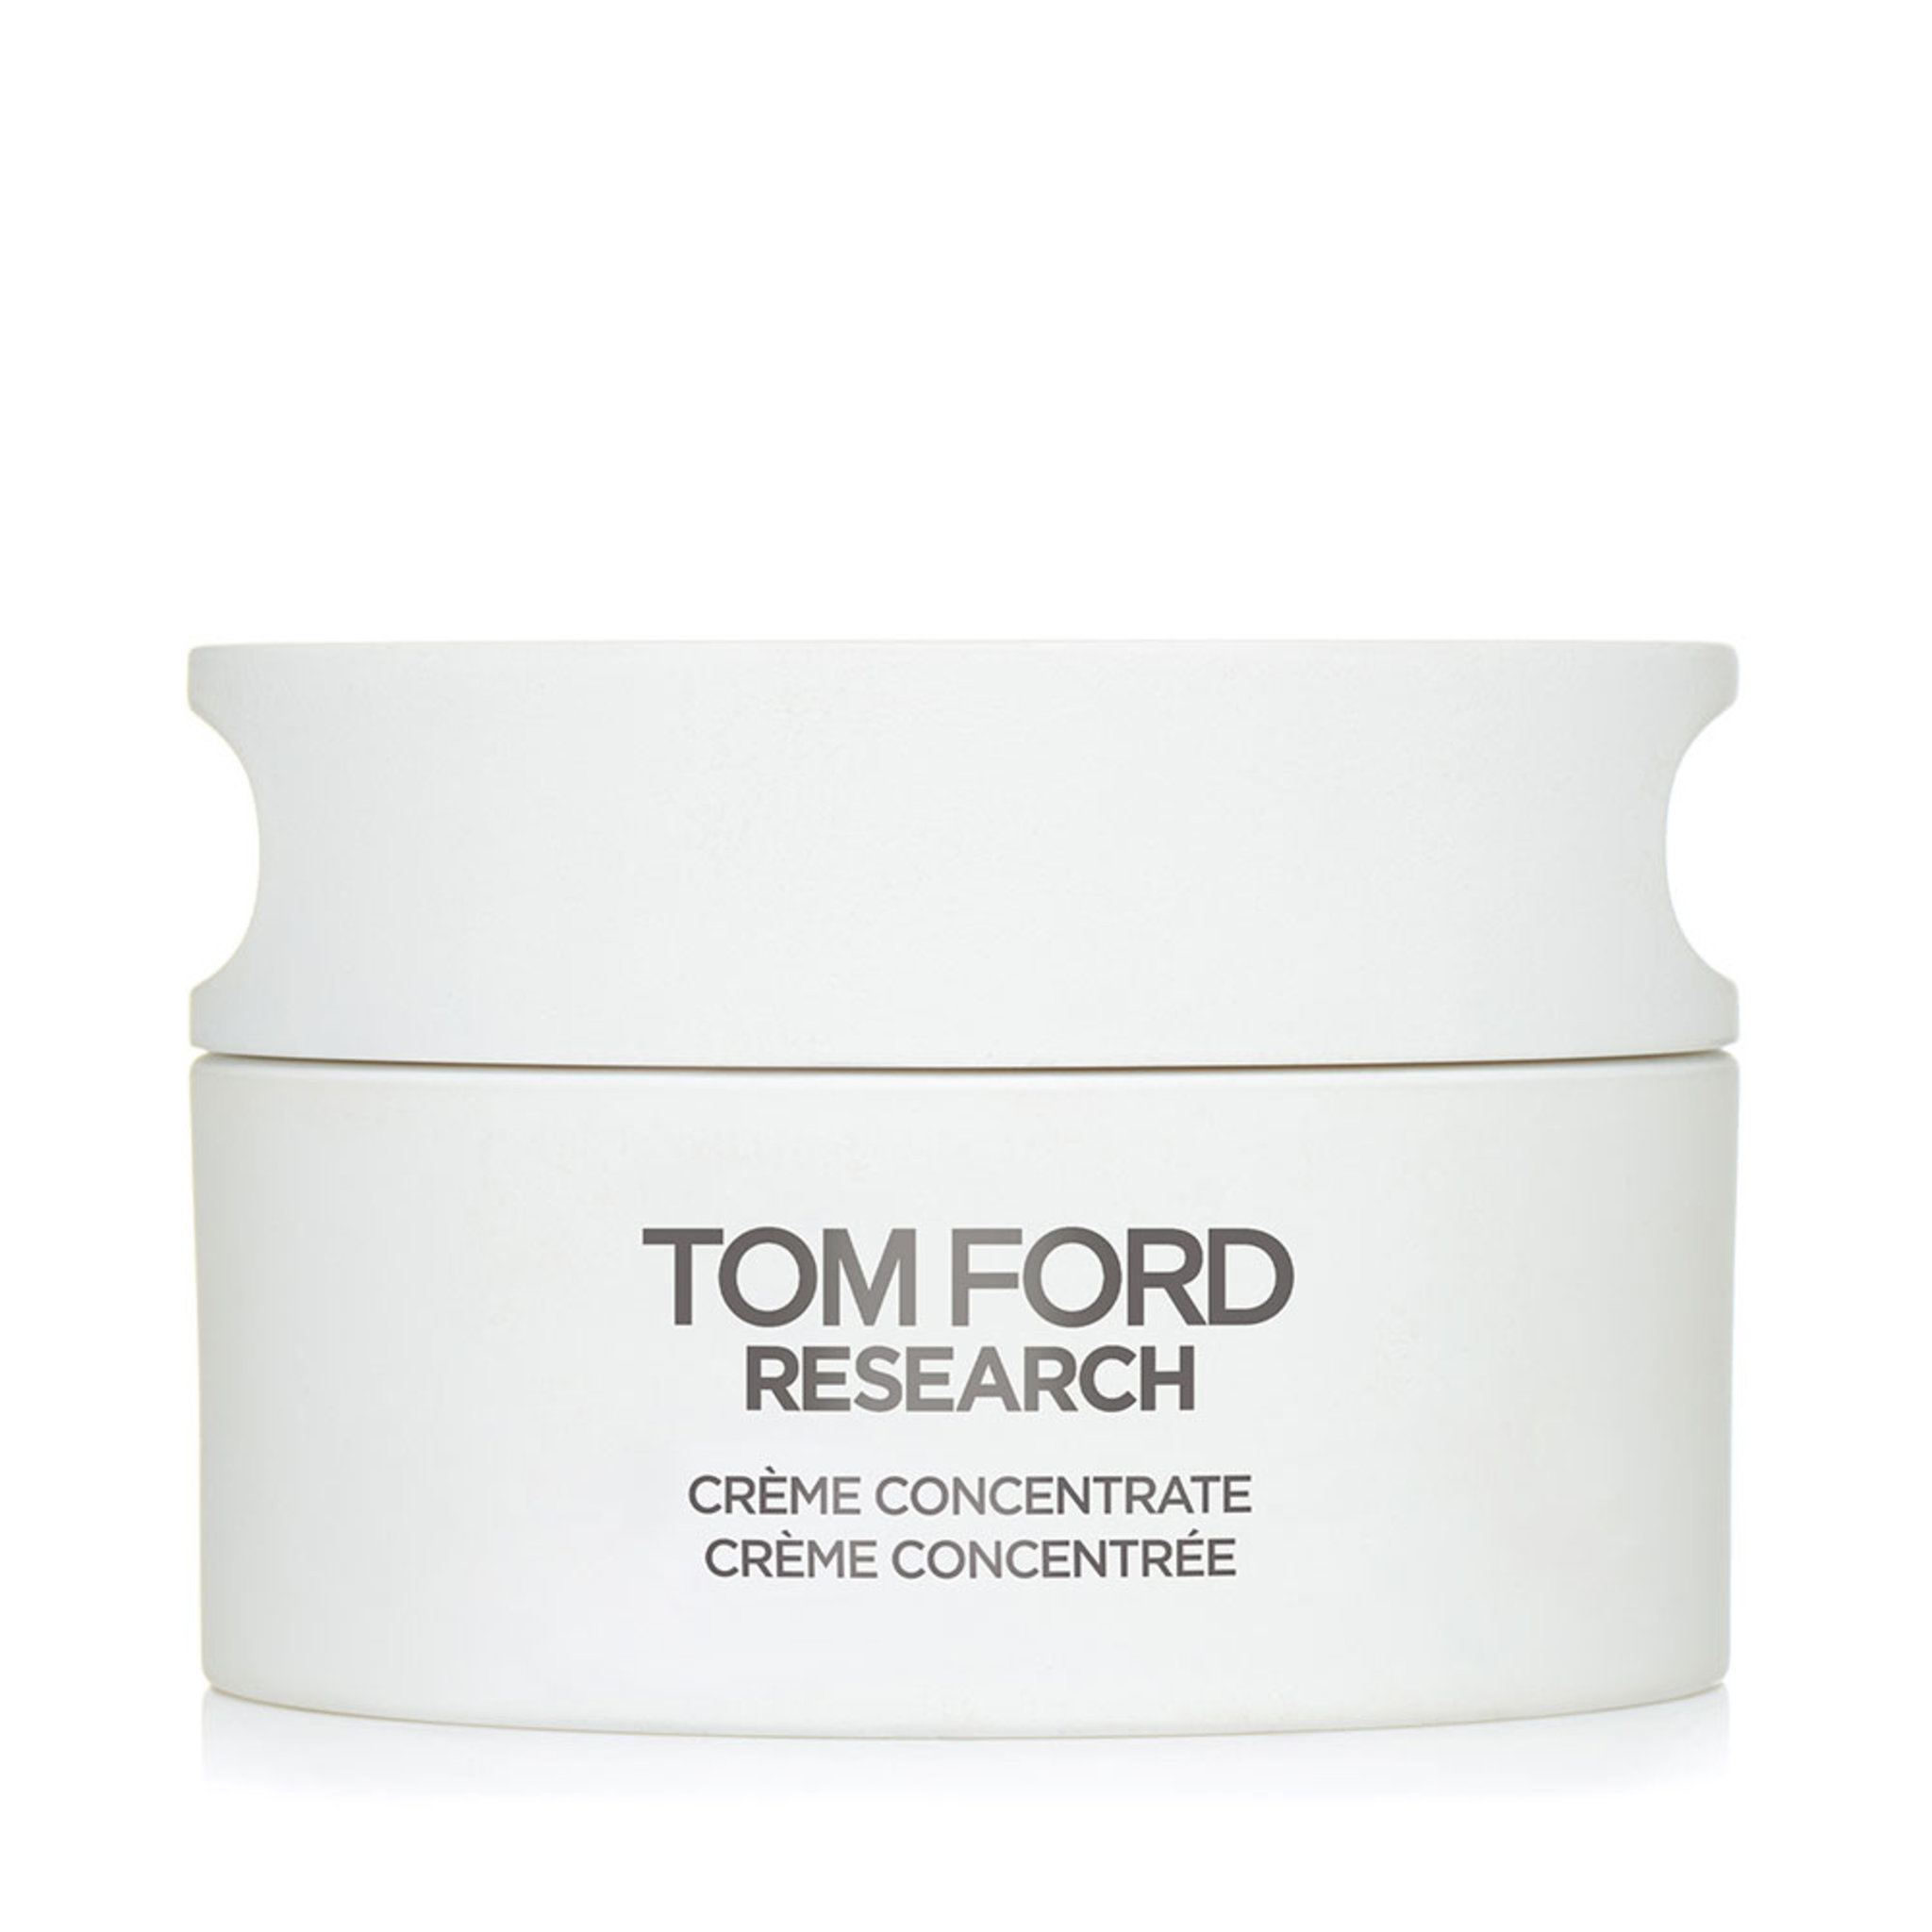 Research Creme Concentrate Day cream, 50 ML